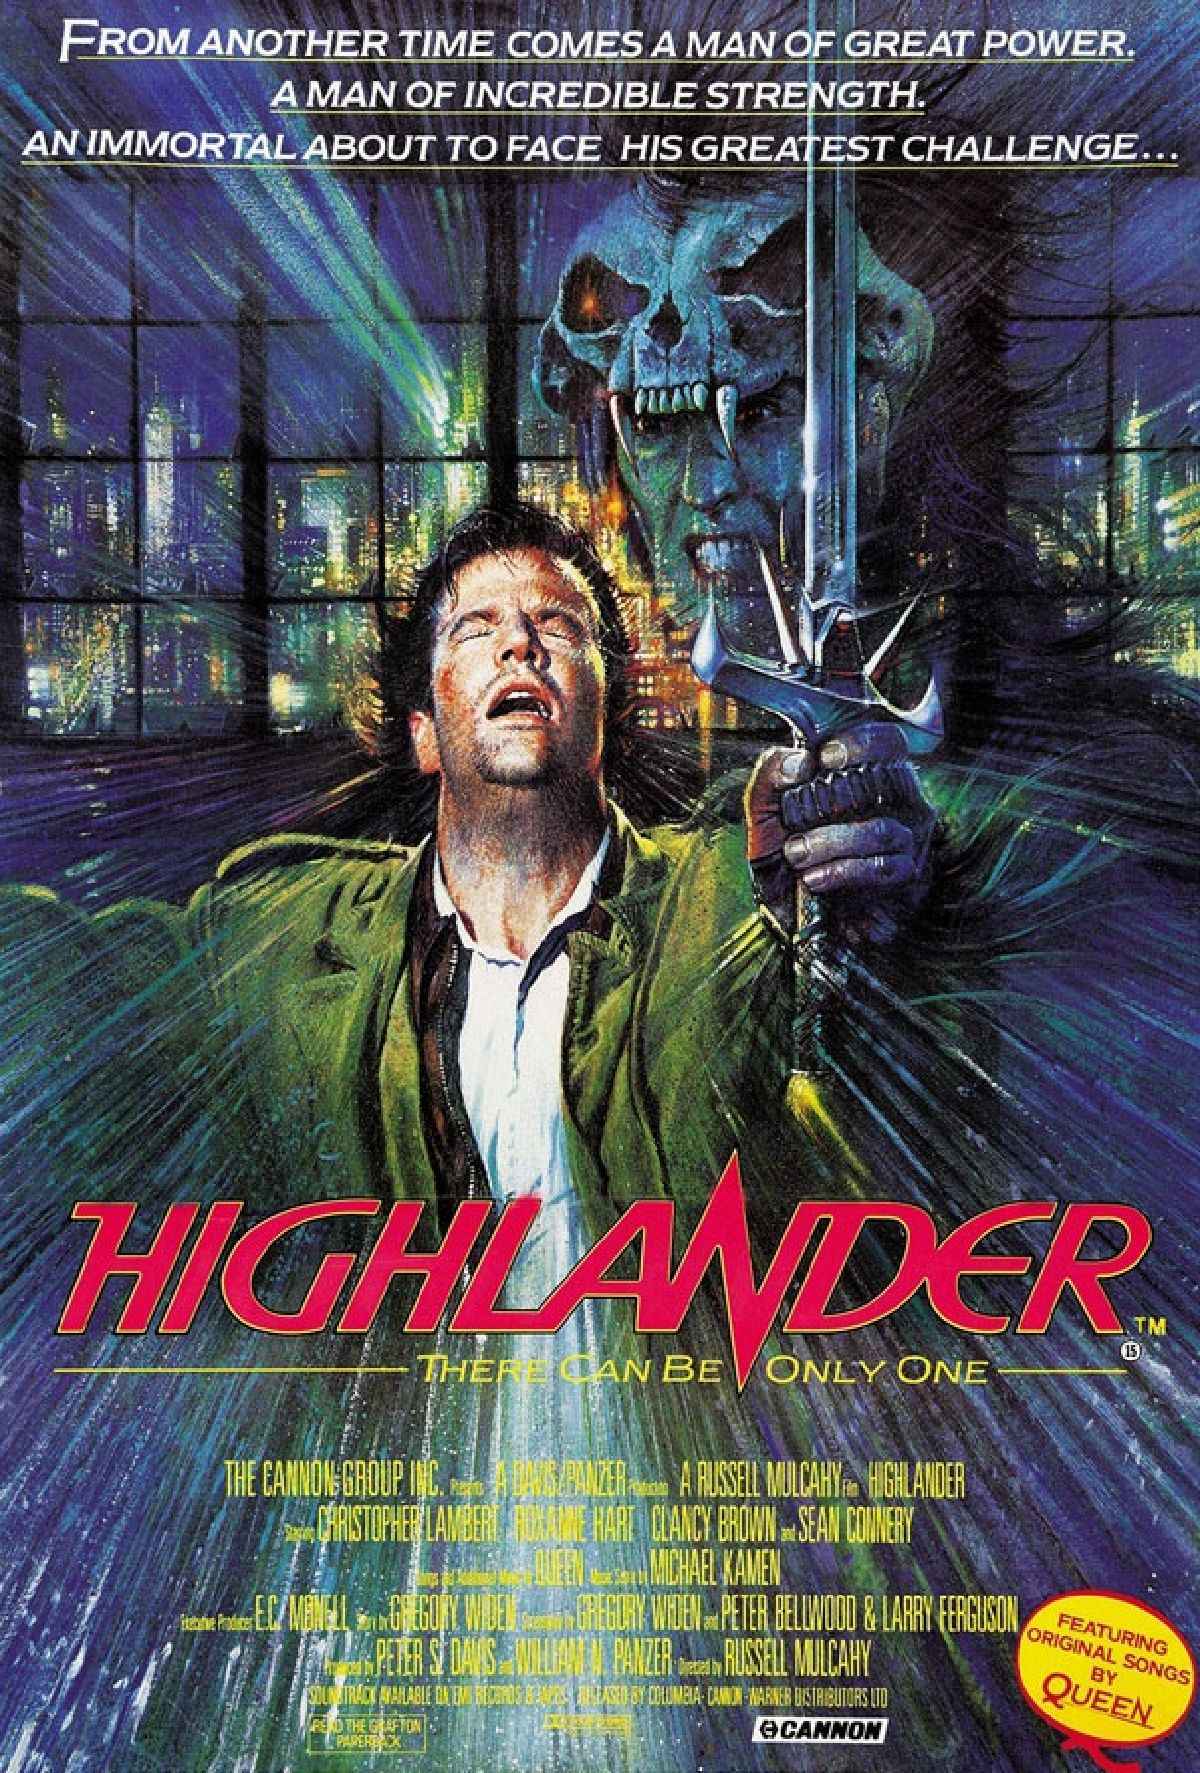 'Highlander' movie poster